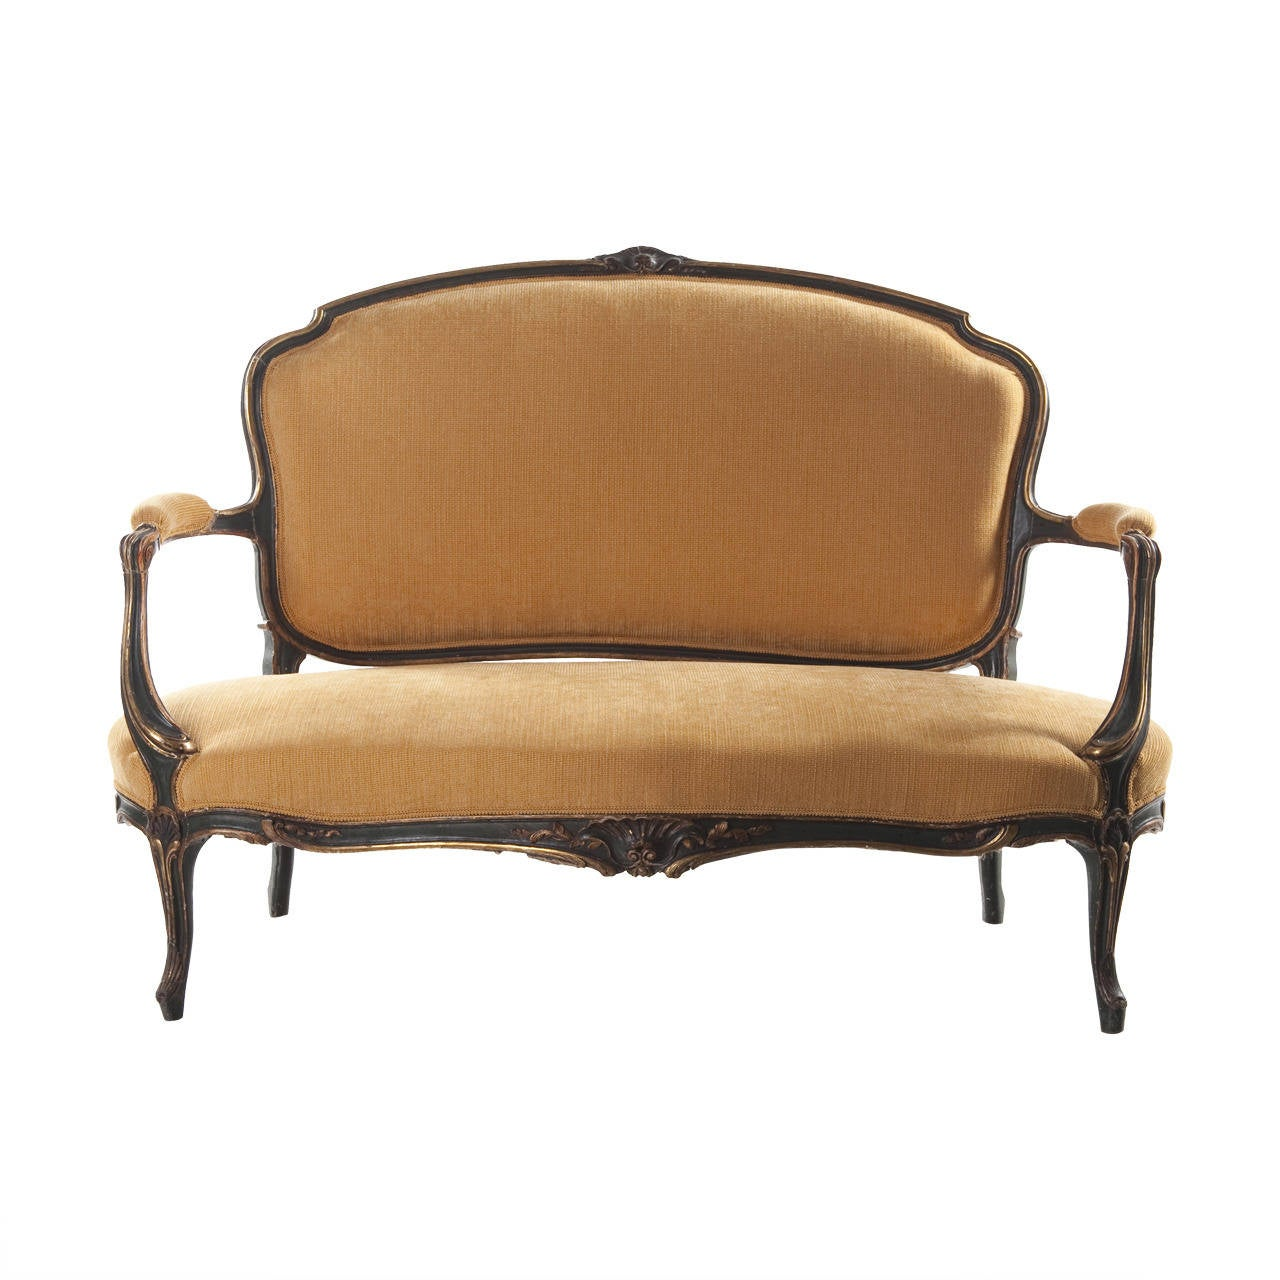 19th Century French Settee, Louis Philippe Style